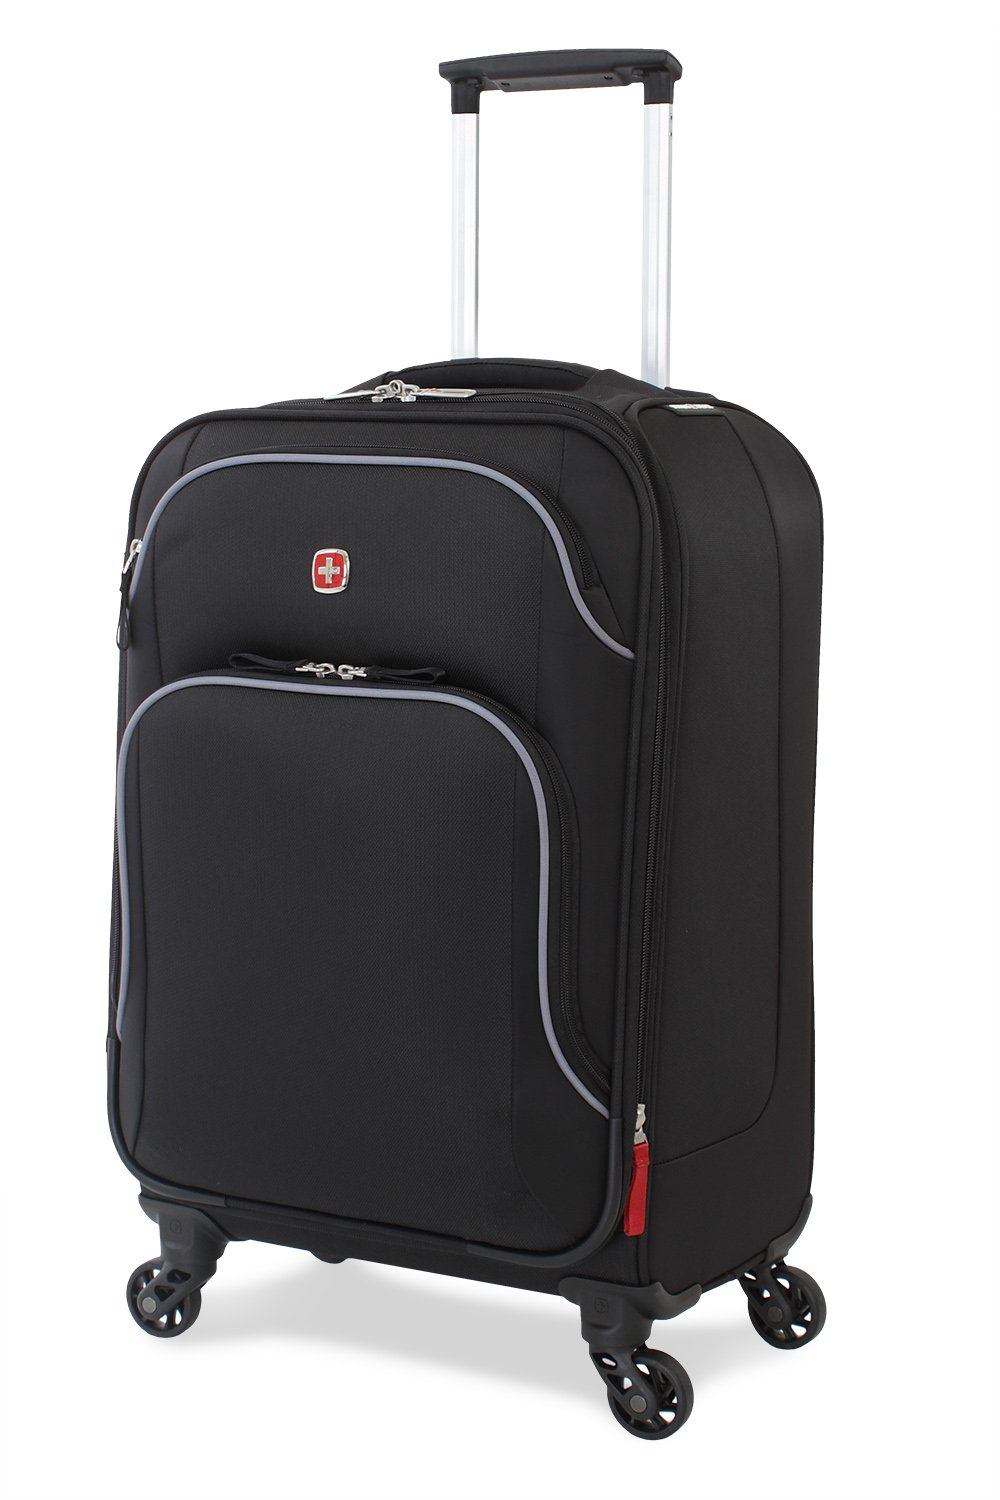 SwissGear Nyon 20' Lightweight Carry-On Suitcase, Black SwissGear Luggage Child Code_Import (Use This) 6320204156